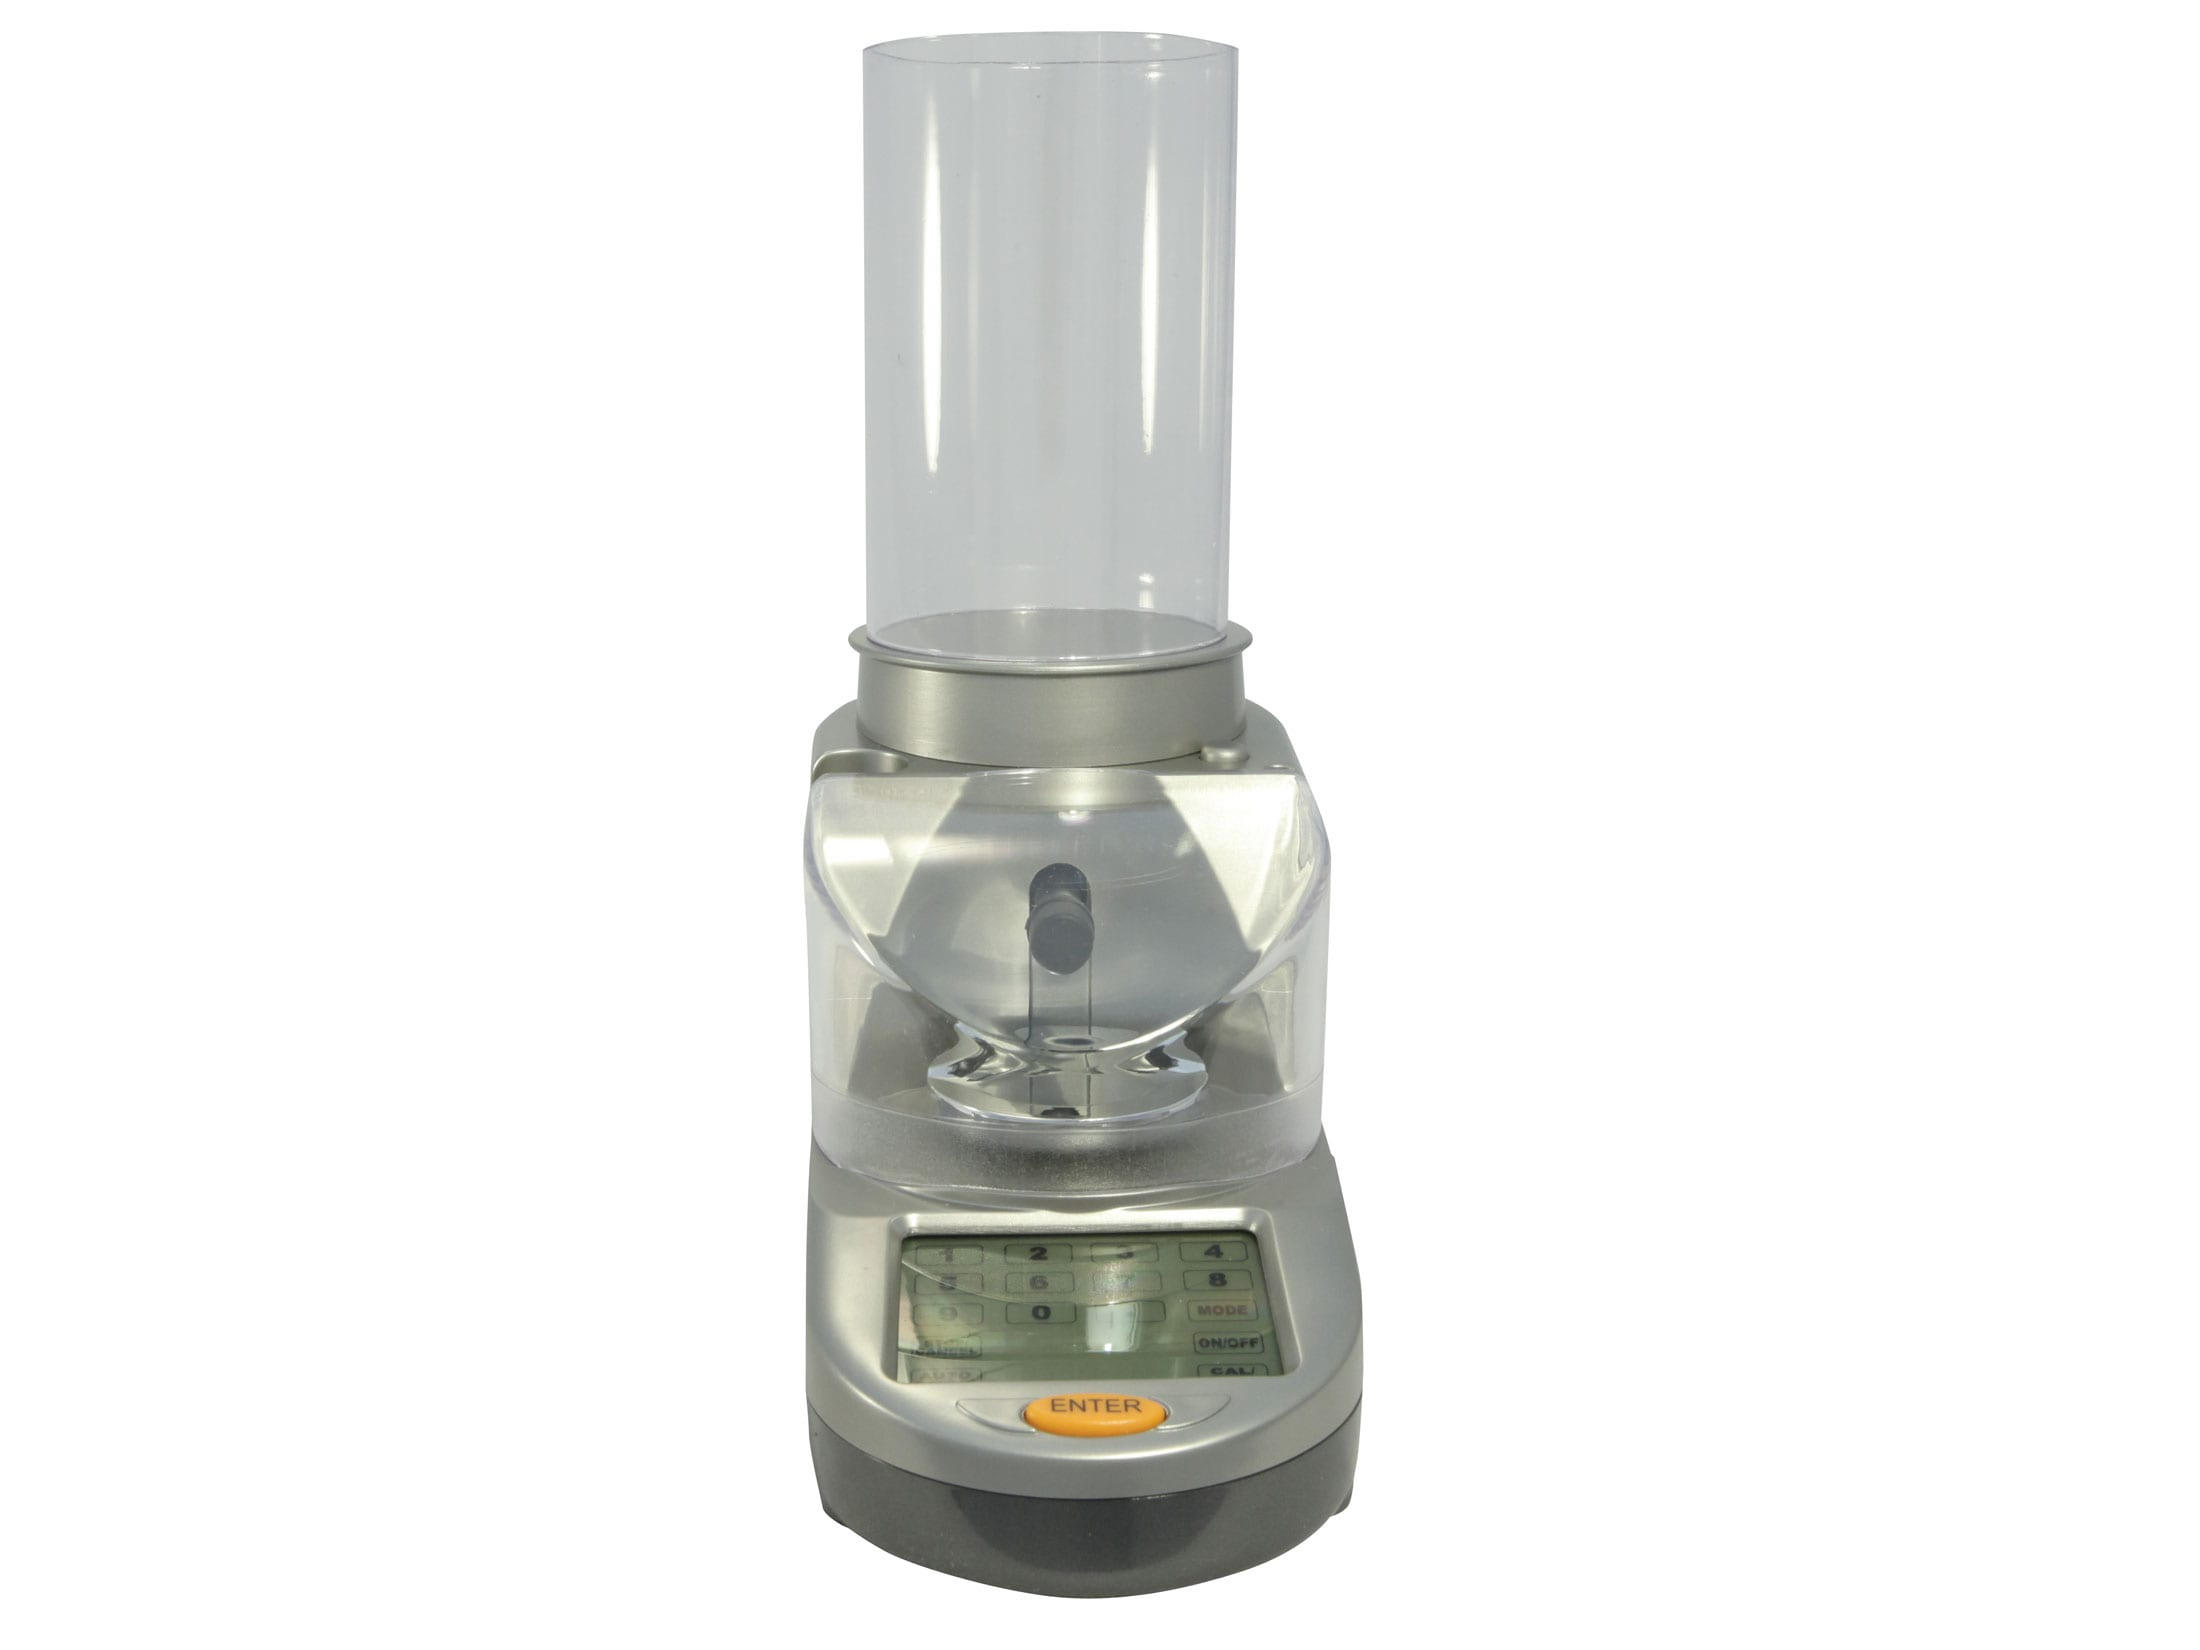 Lyman Gen6 Digital Powder Measure